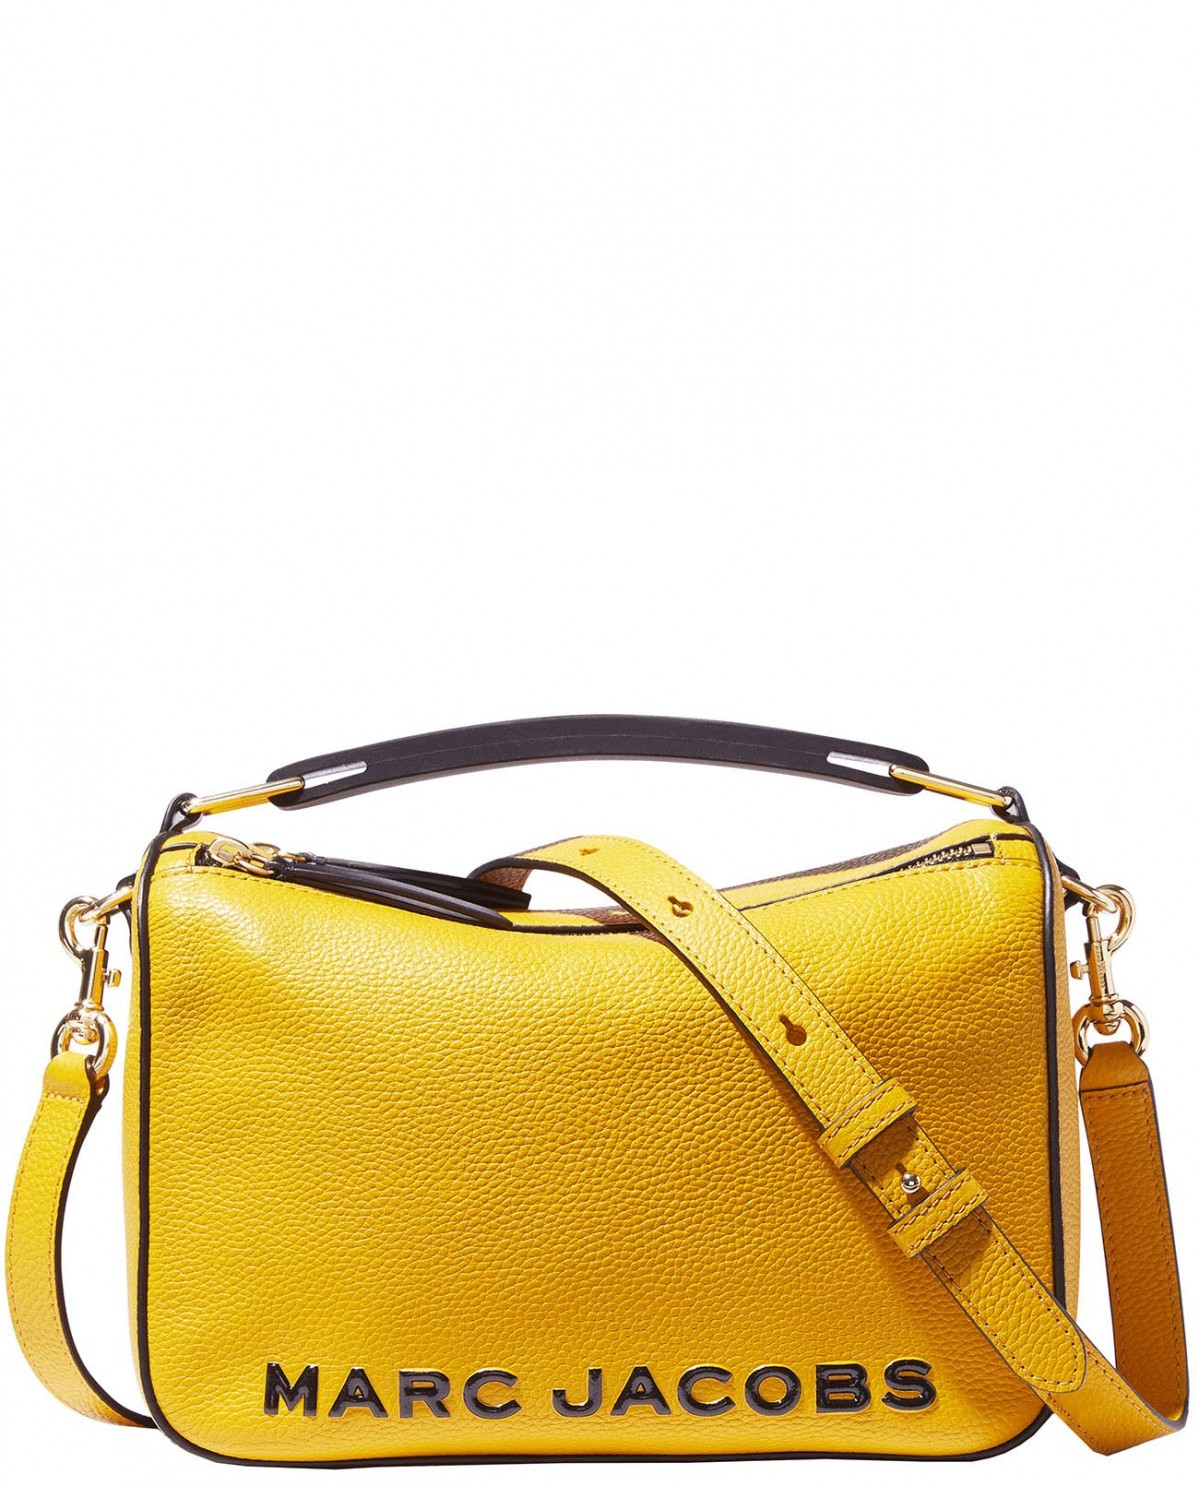 The Marc Jacobs ochre Soft Box 23